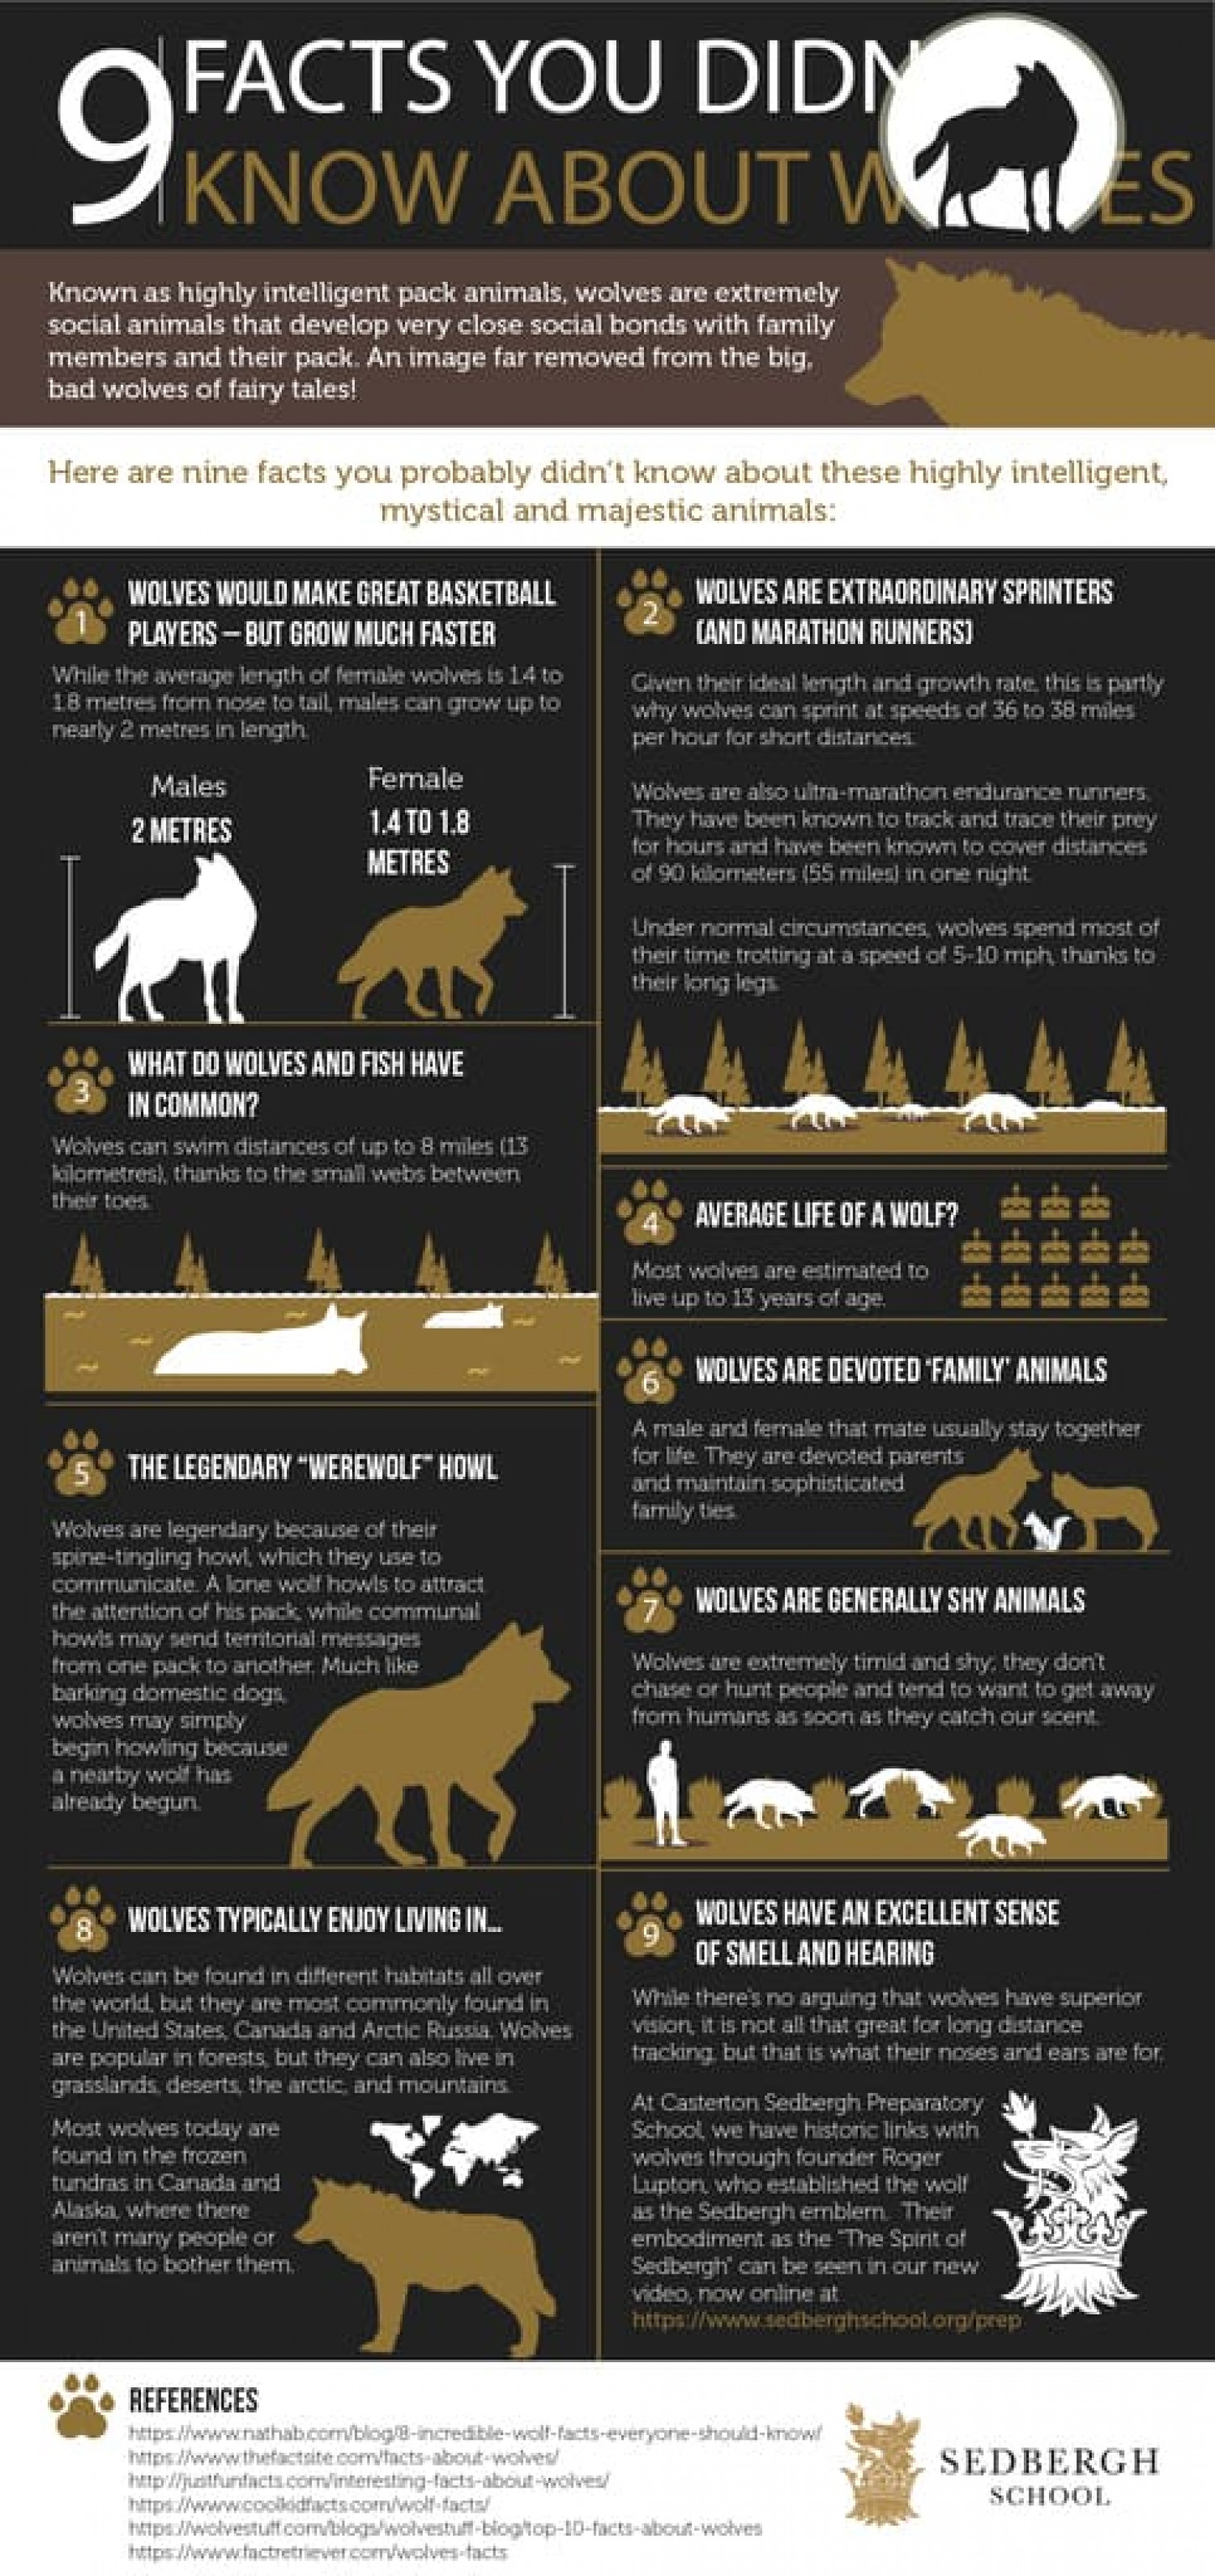 9 Facts You Didn't Know About Wolves Infographic